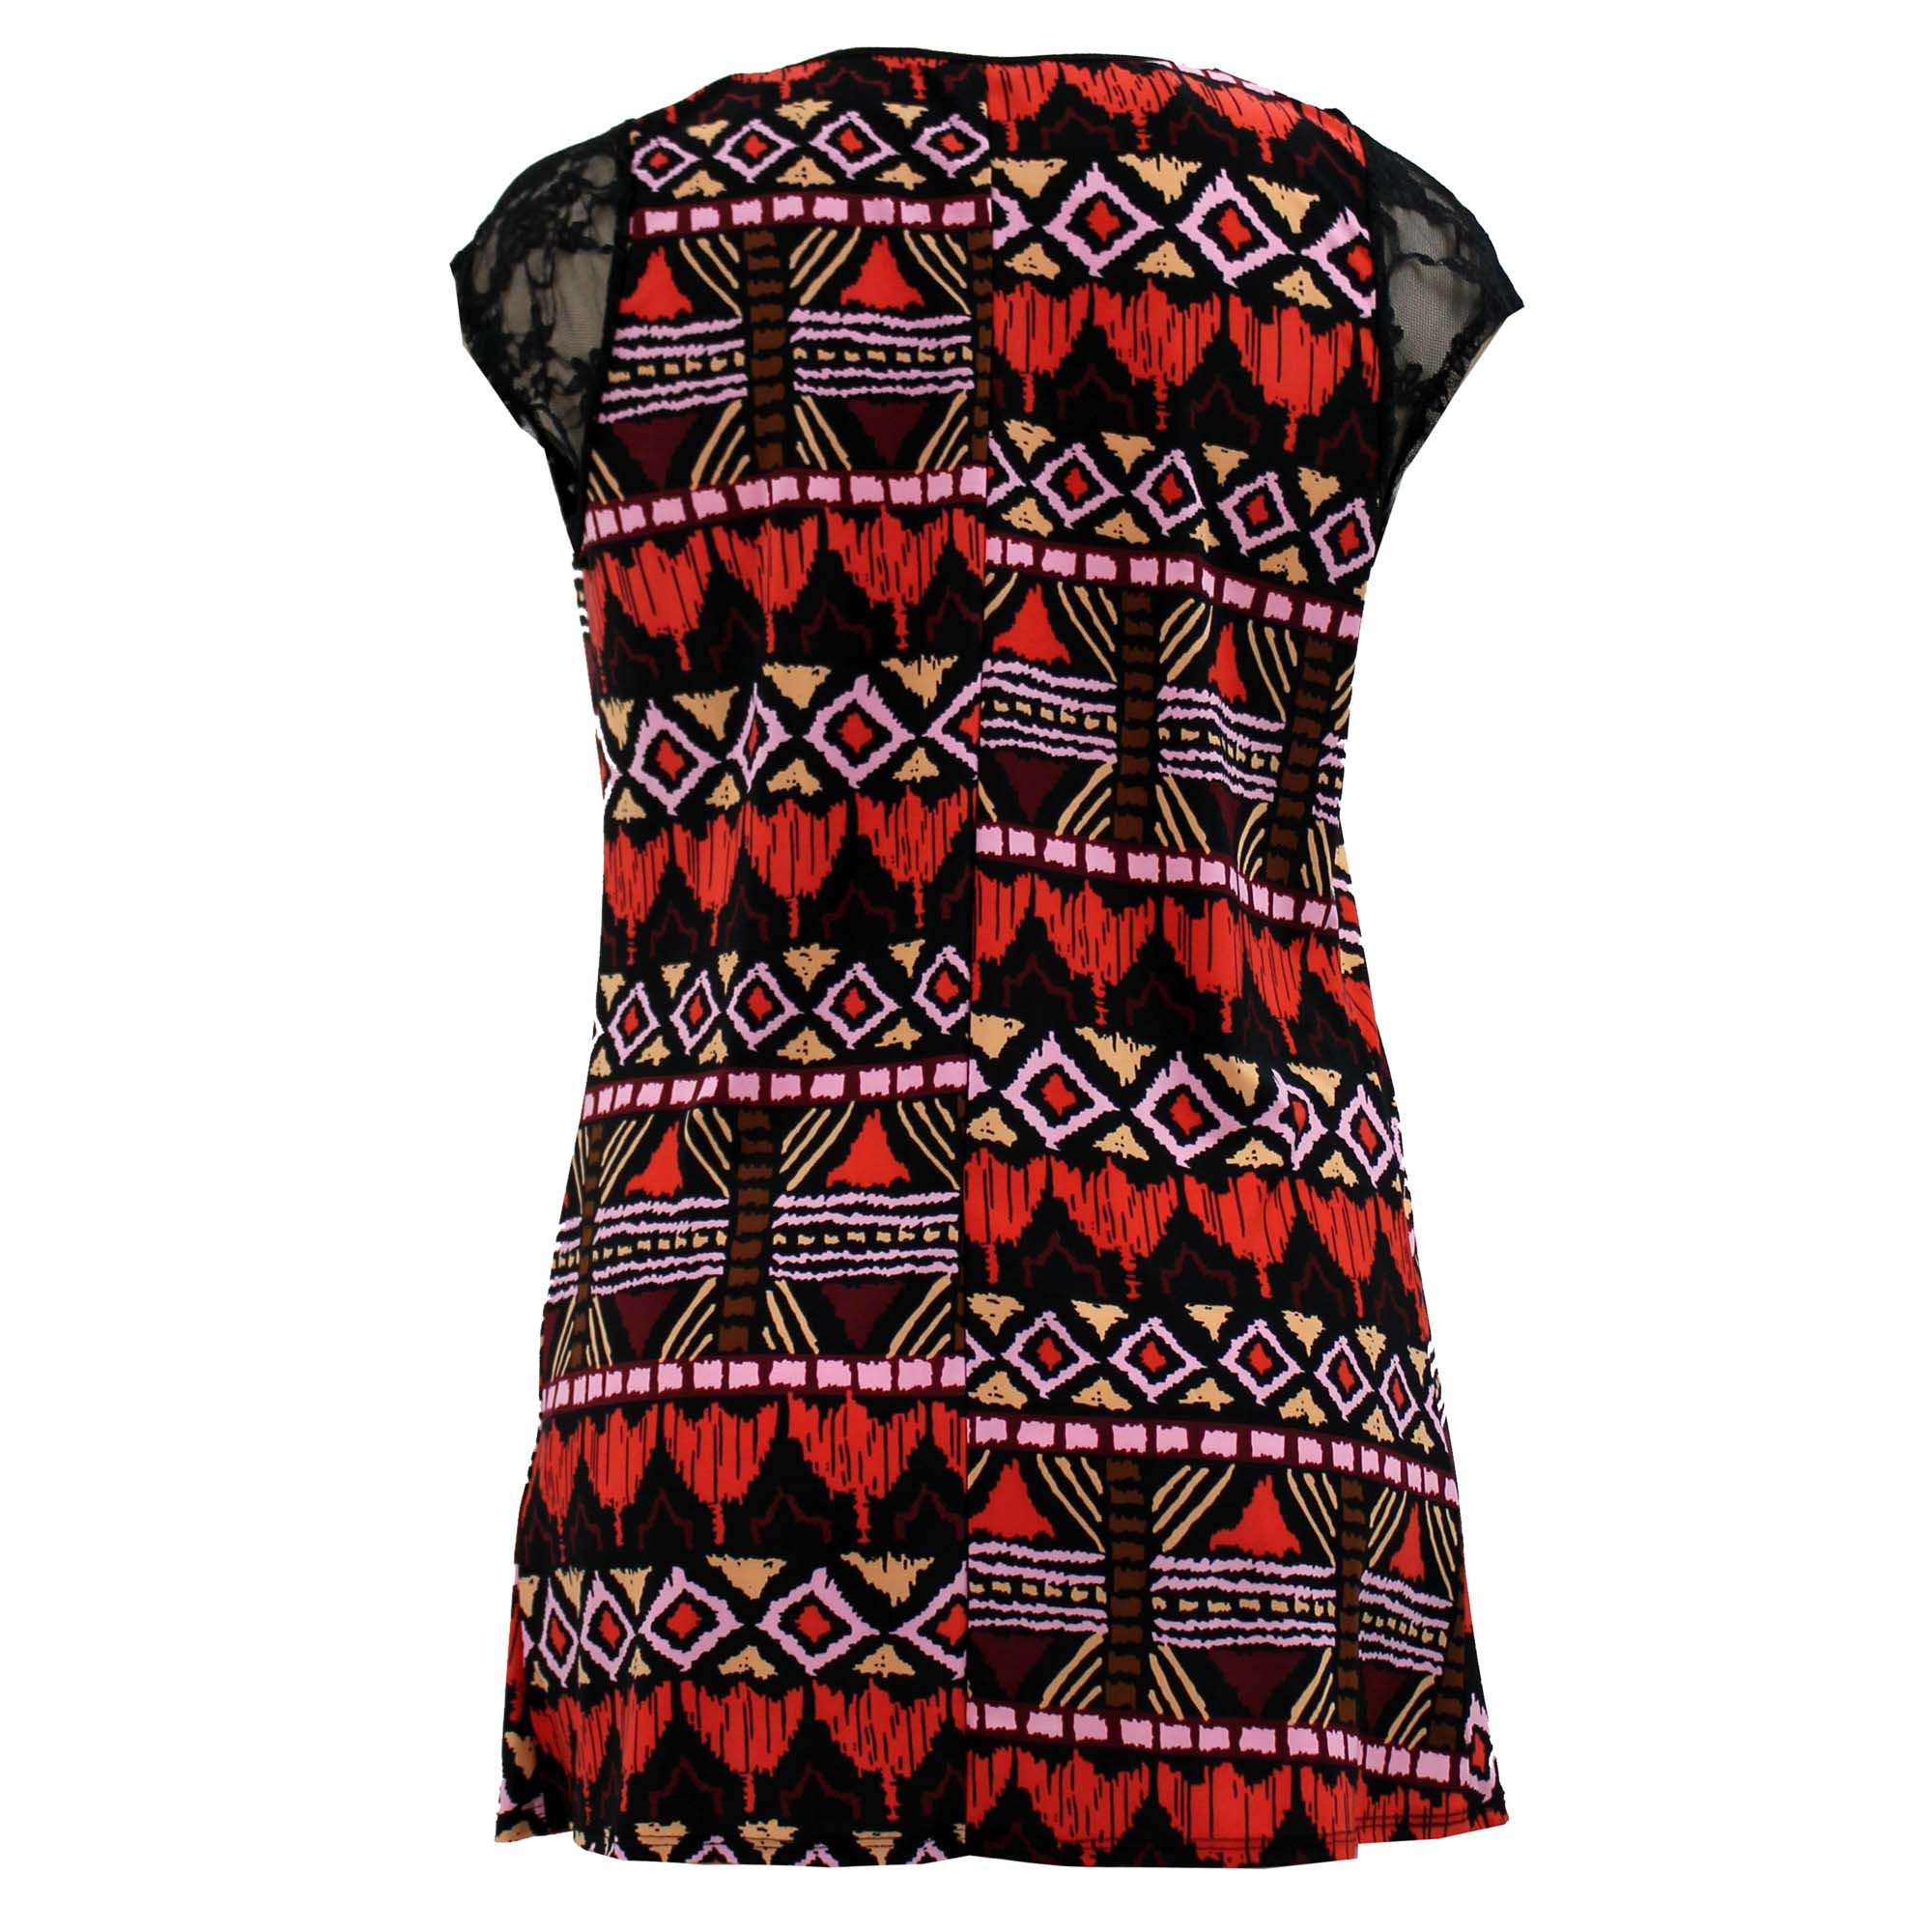 Ladies Red Multi Tribal Print Lace Contrast Top